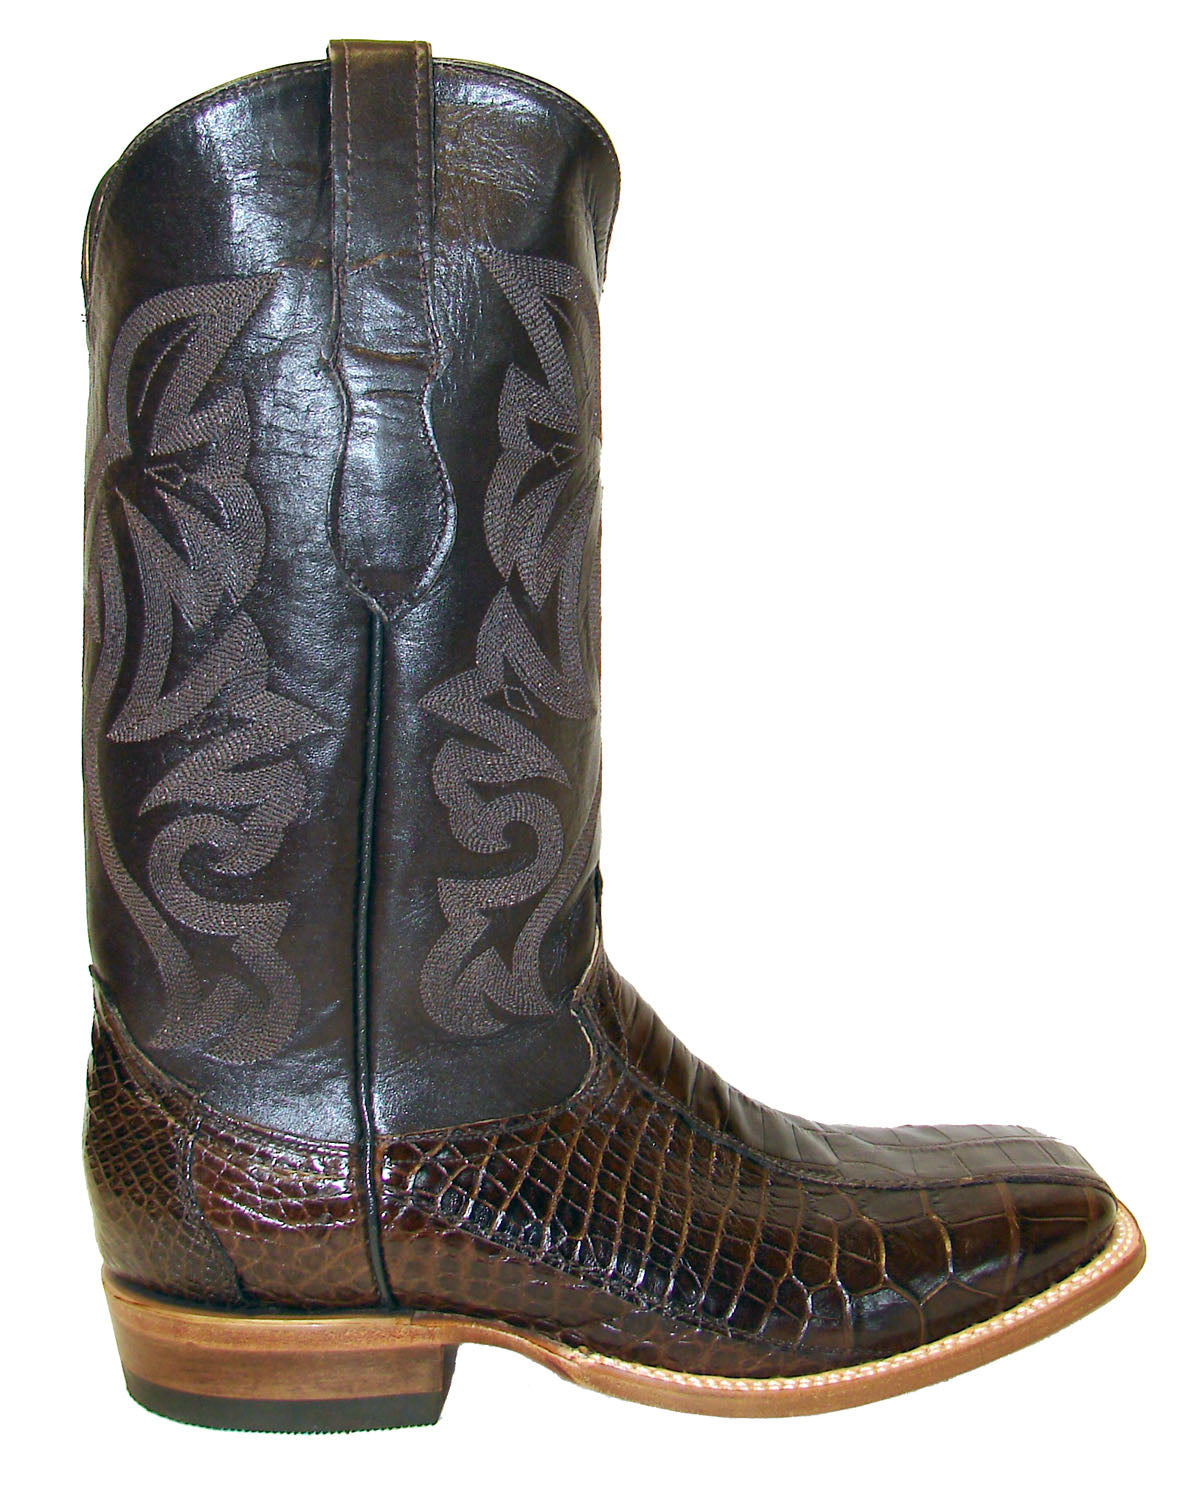 Corral Alligator Cowboy Boots - Square Toe | Sheplers